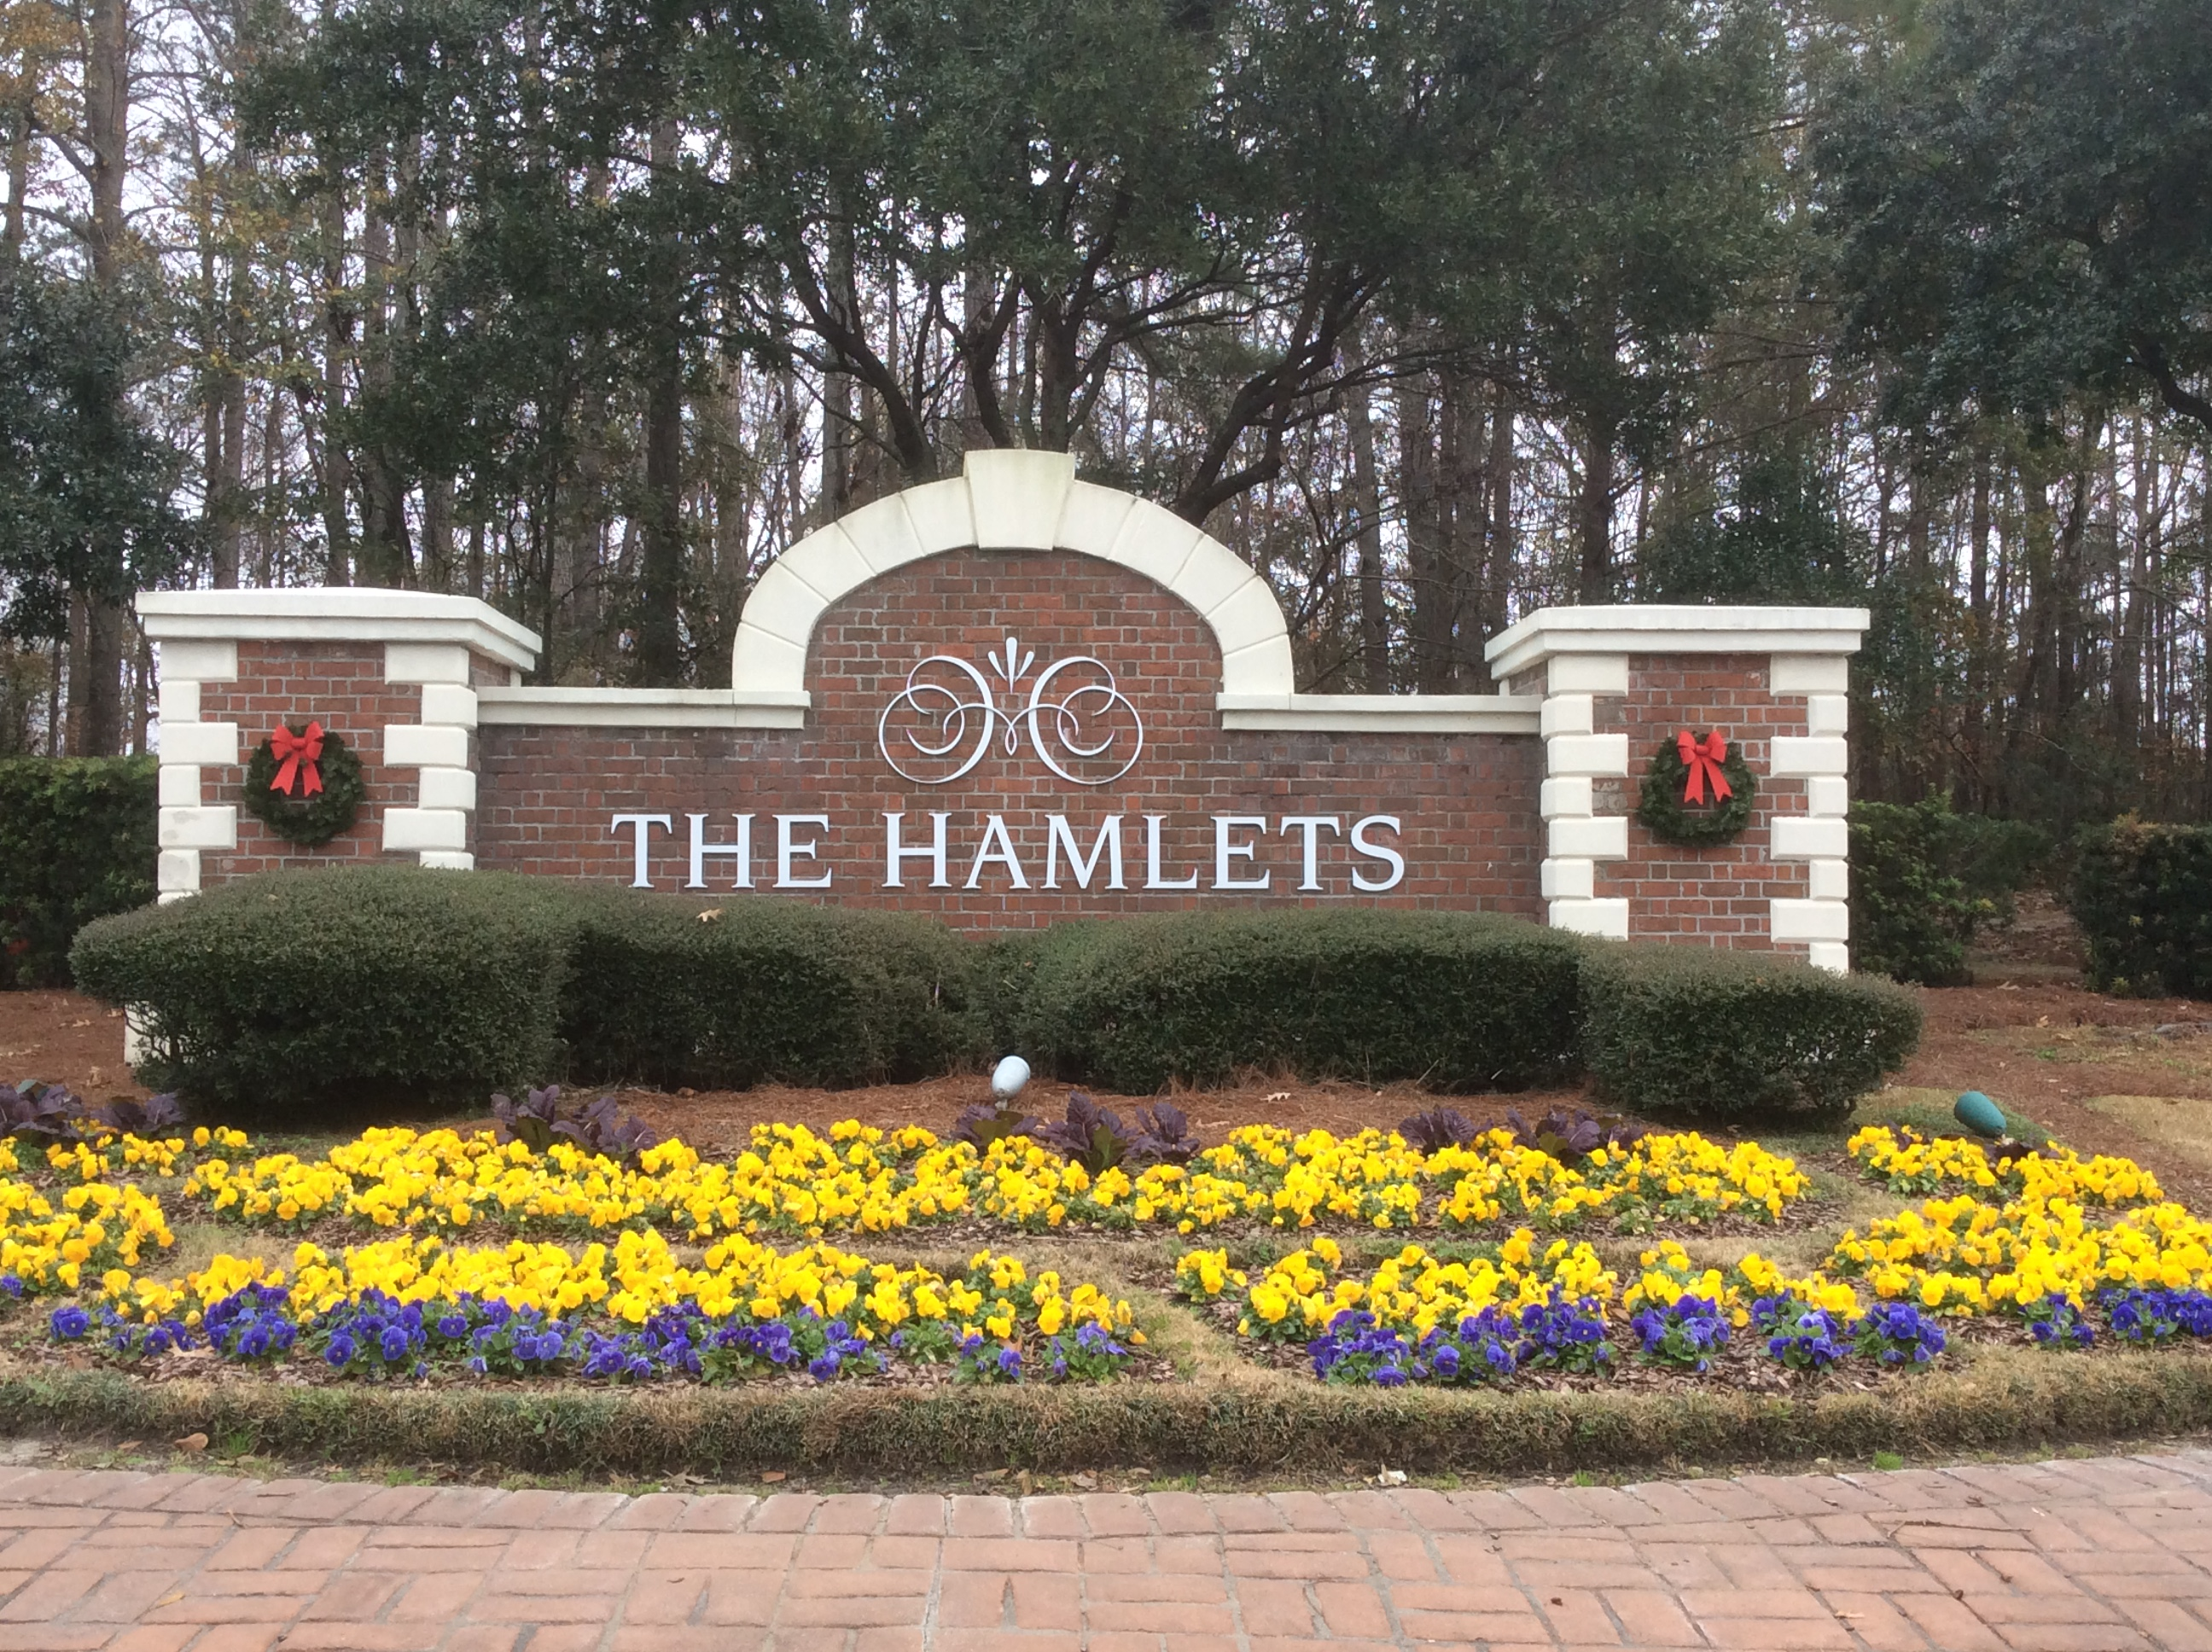 Entrance to The Hamlets